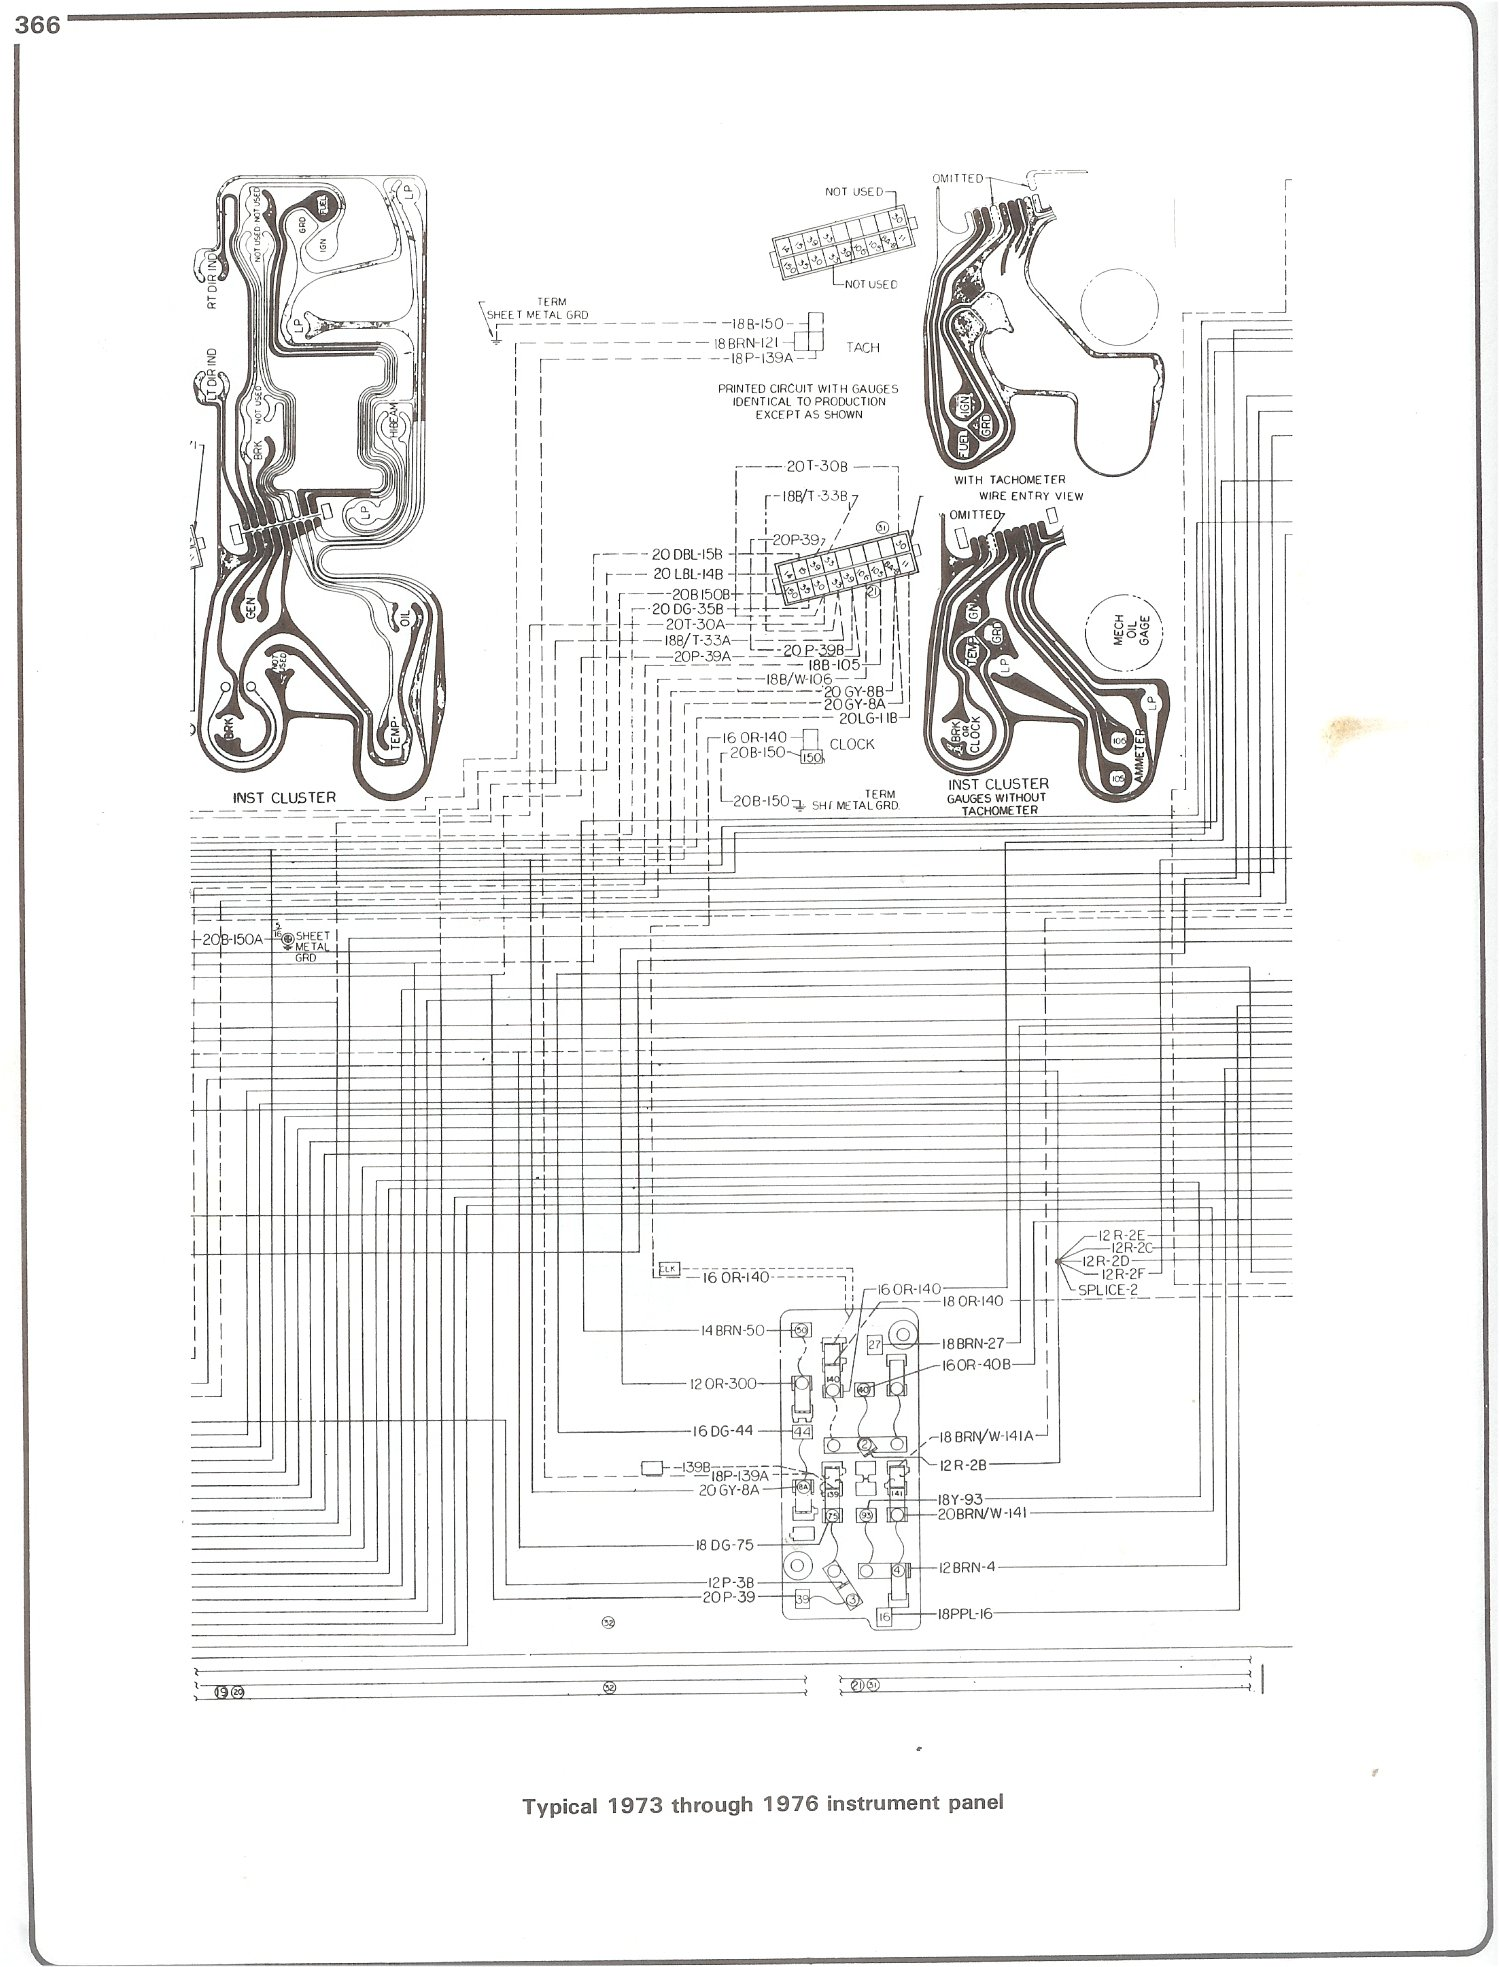 1973 Chevy C10 Wiring Diagram Completed Diagrams 1986 Alternator Complete 73 87 Small Block